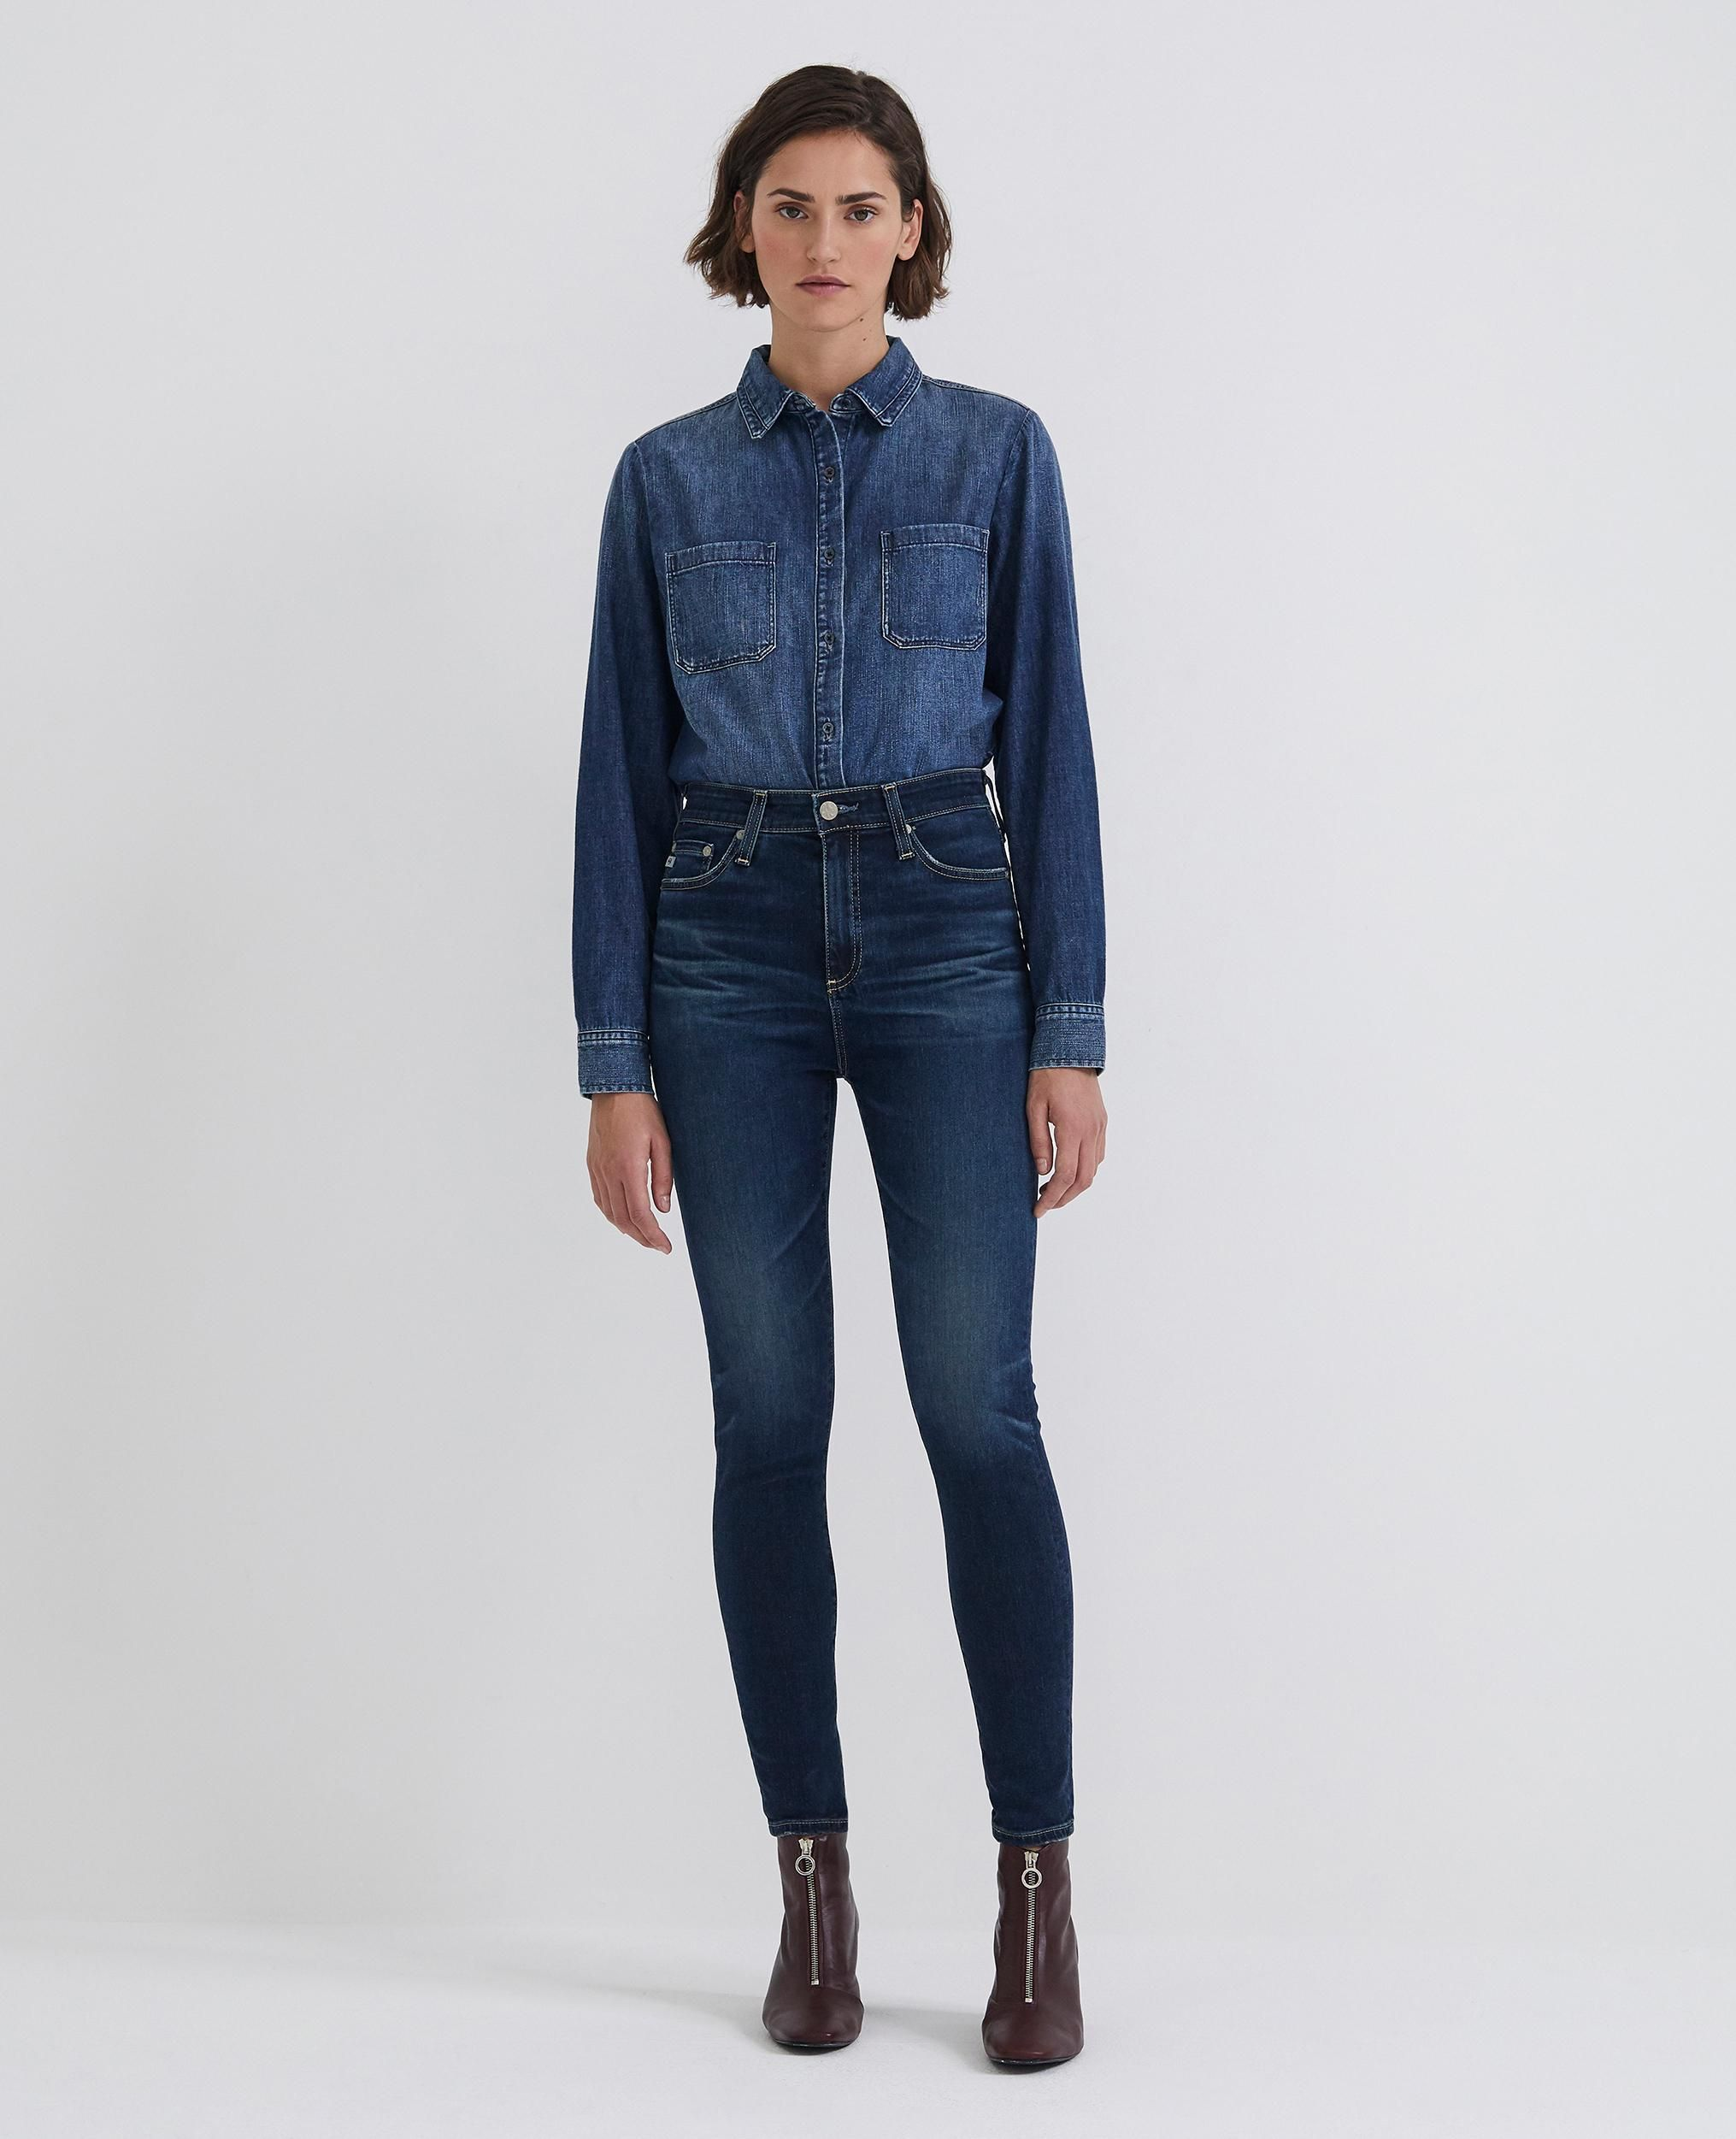 d3ff2d1a08e The Mila Ankle. Super high rise skinny jeans by AG. If you are going to  wear a skinny jean and you want to minimize your stomach. This is it.    Poplin Style